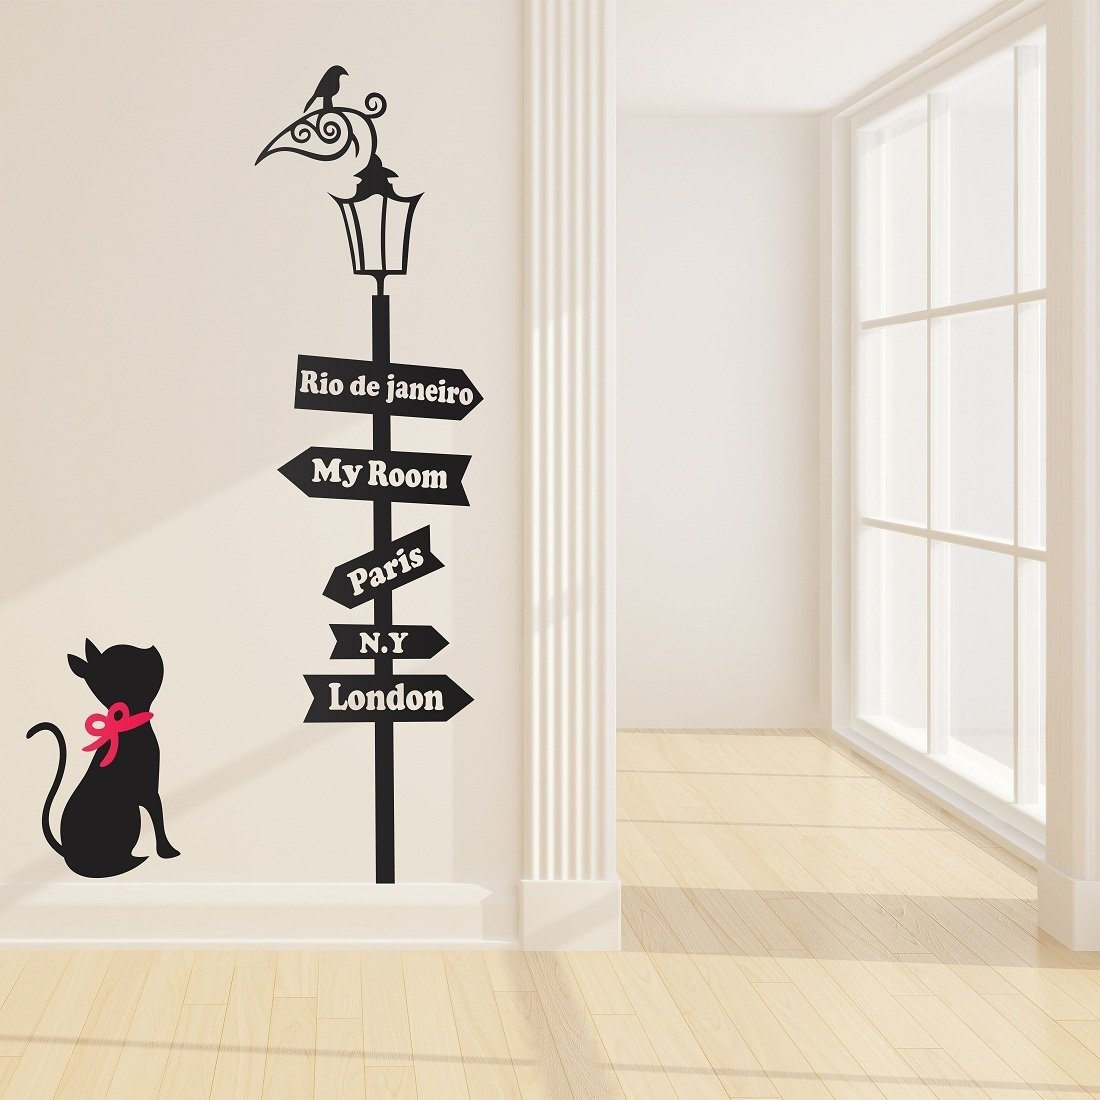 Luke and Lilly Cat and Quotes Design Vinyl Wall Sticker (60